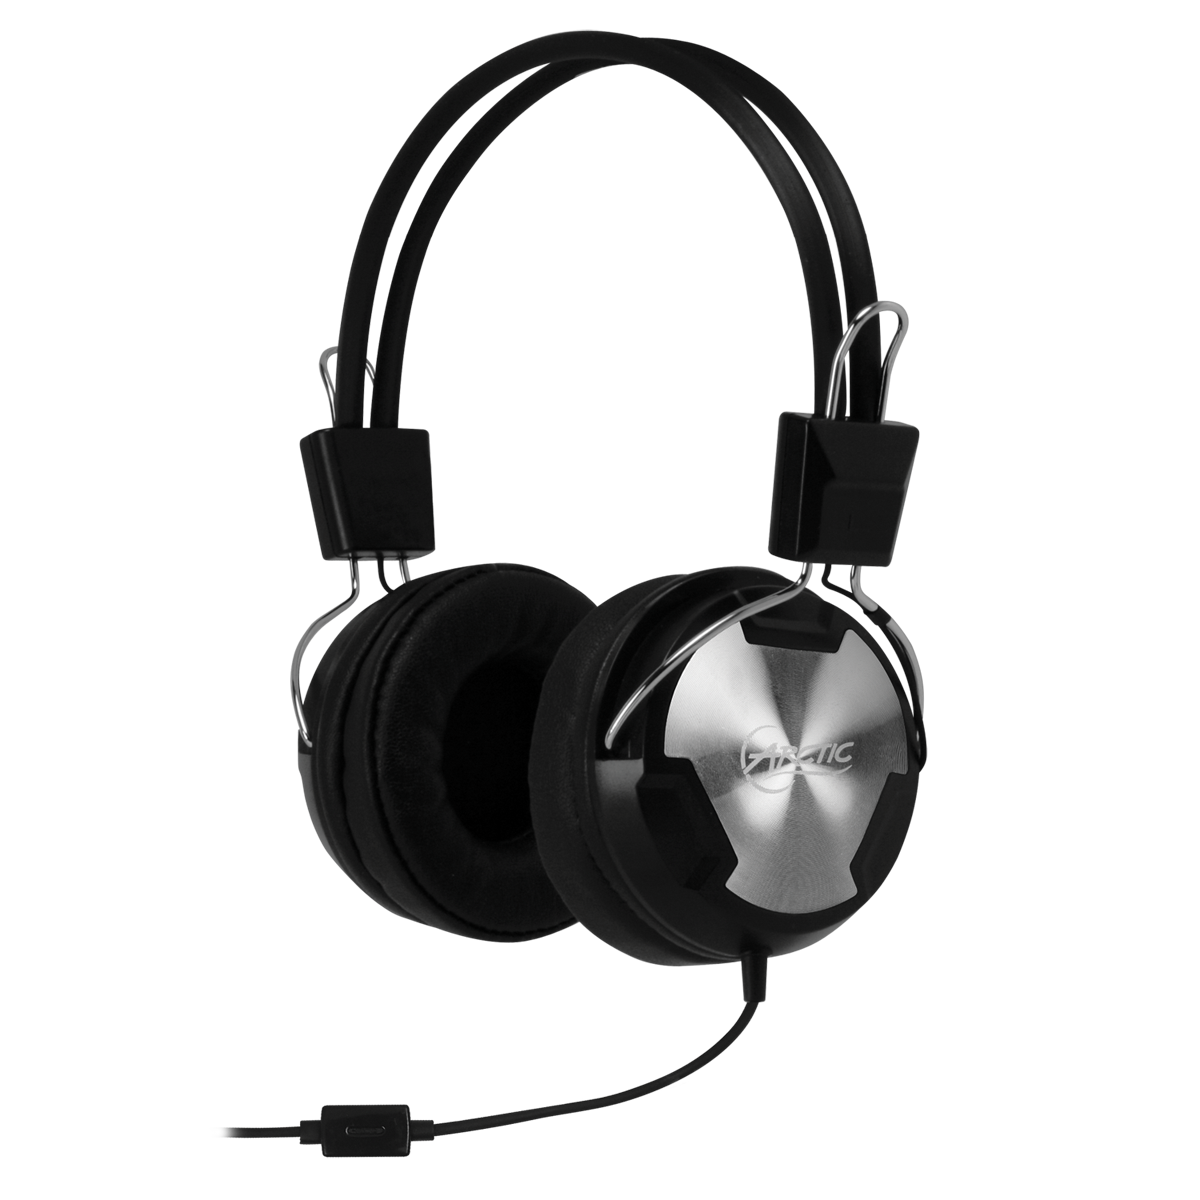 ARCTIC P402 Headphone Review